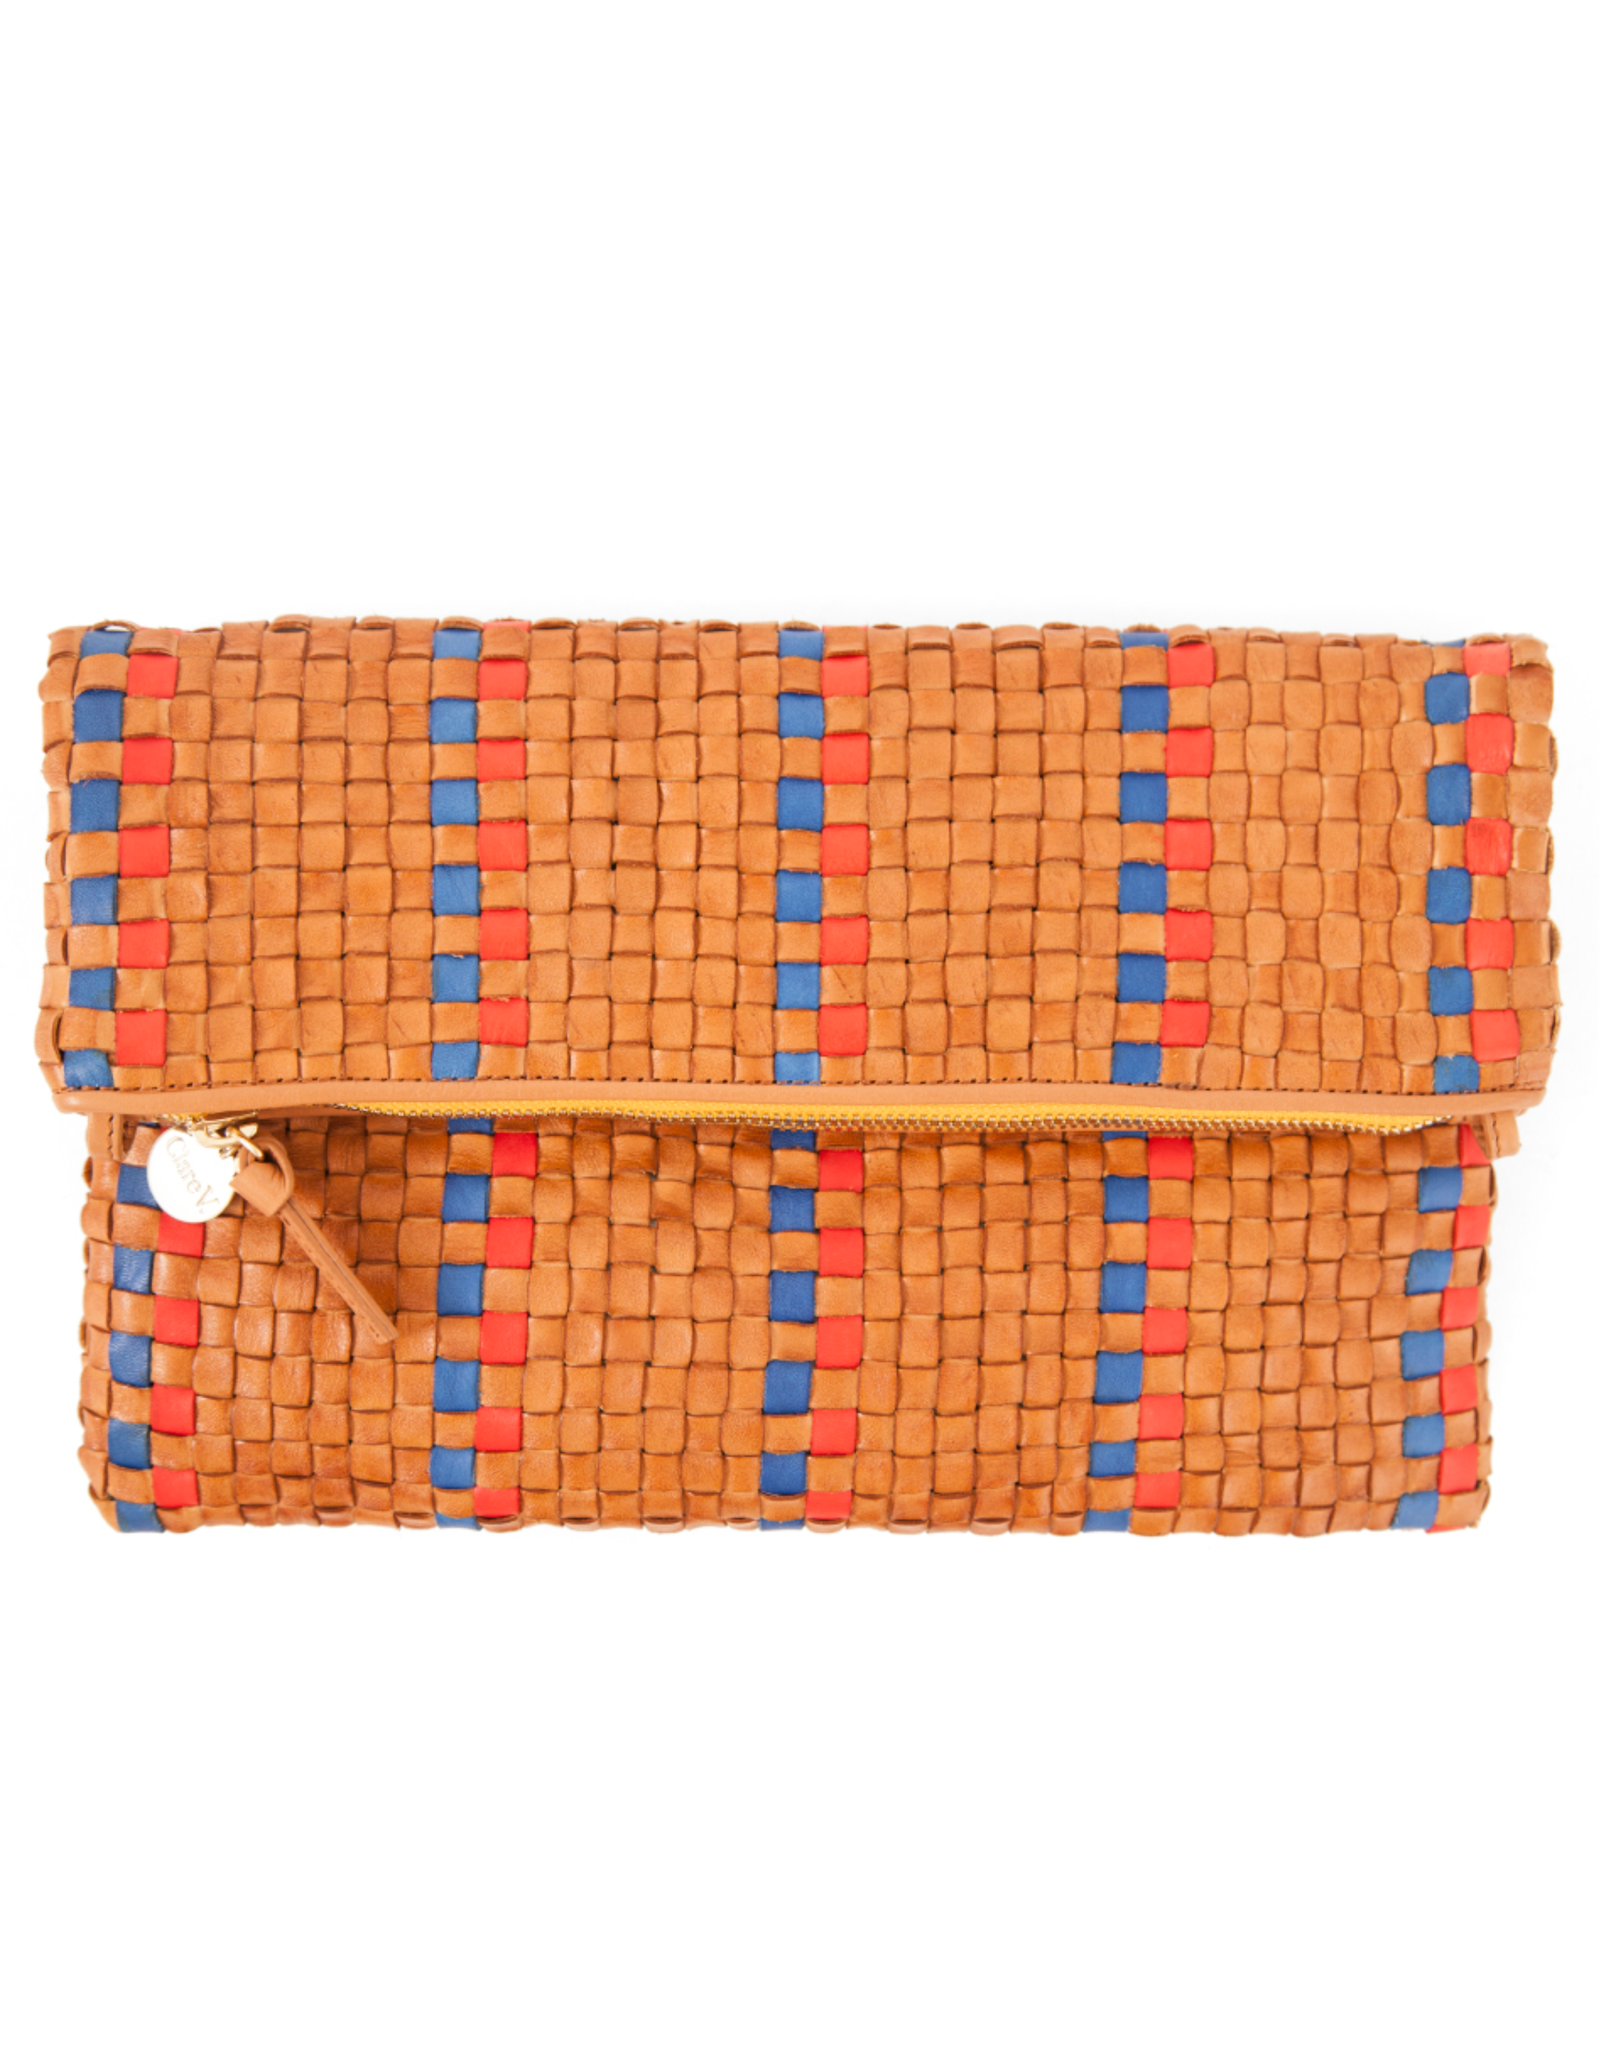 Clare V Foldover Clutch w/ Tabs Woven Natural w/ Navy & Poppy